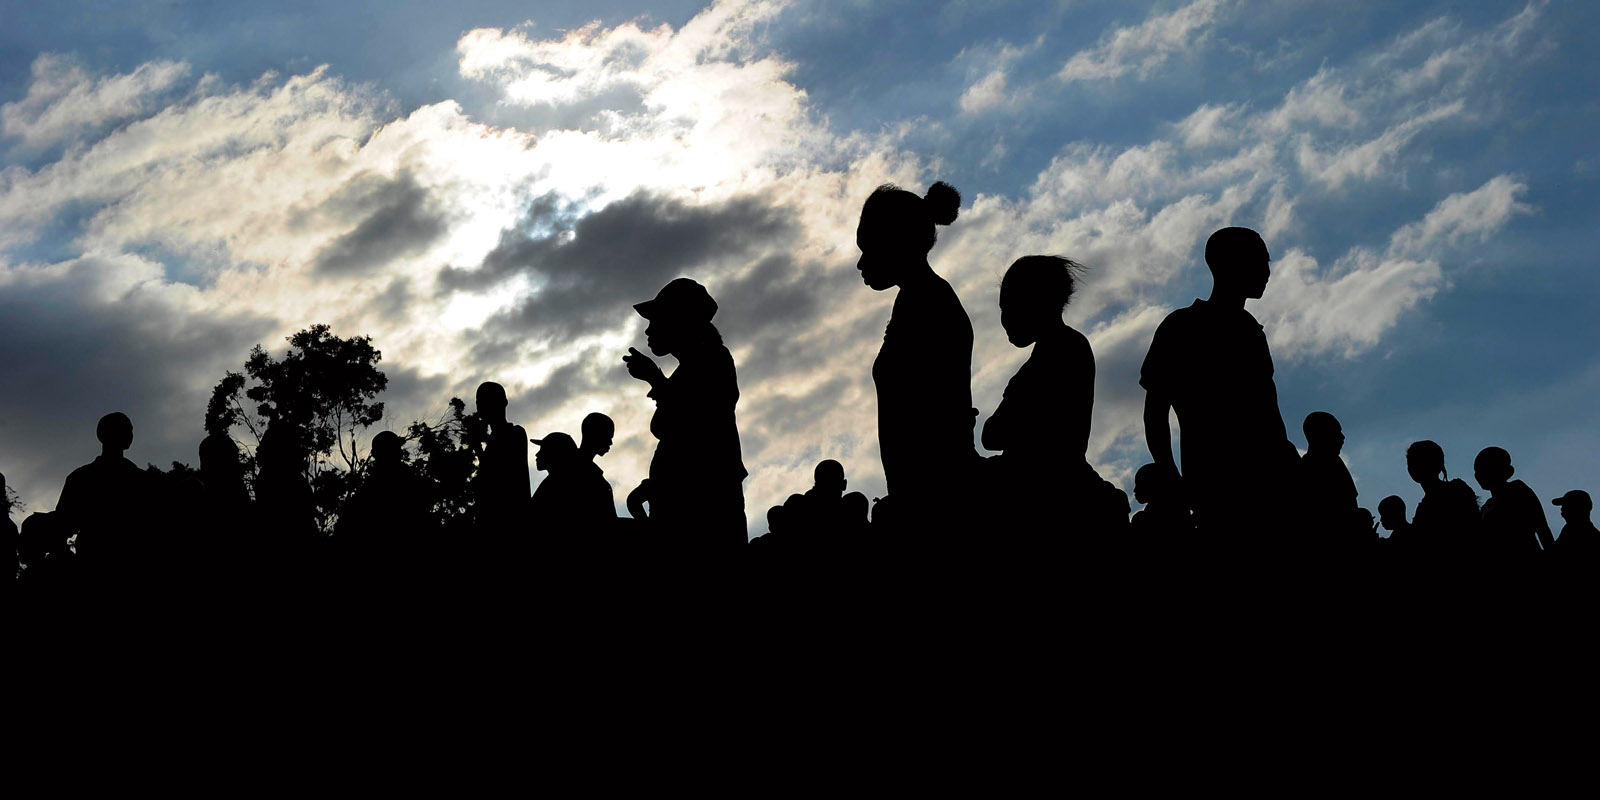 silhouettes of Haitians against a cloudy sky